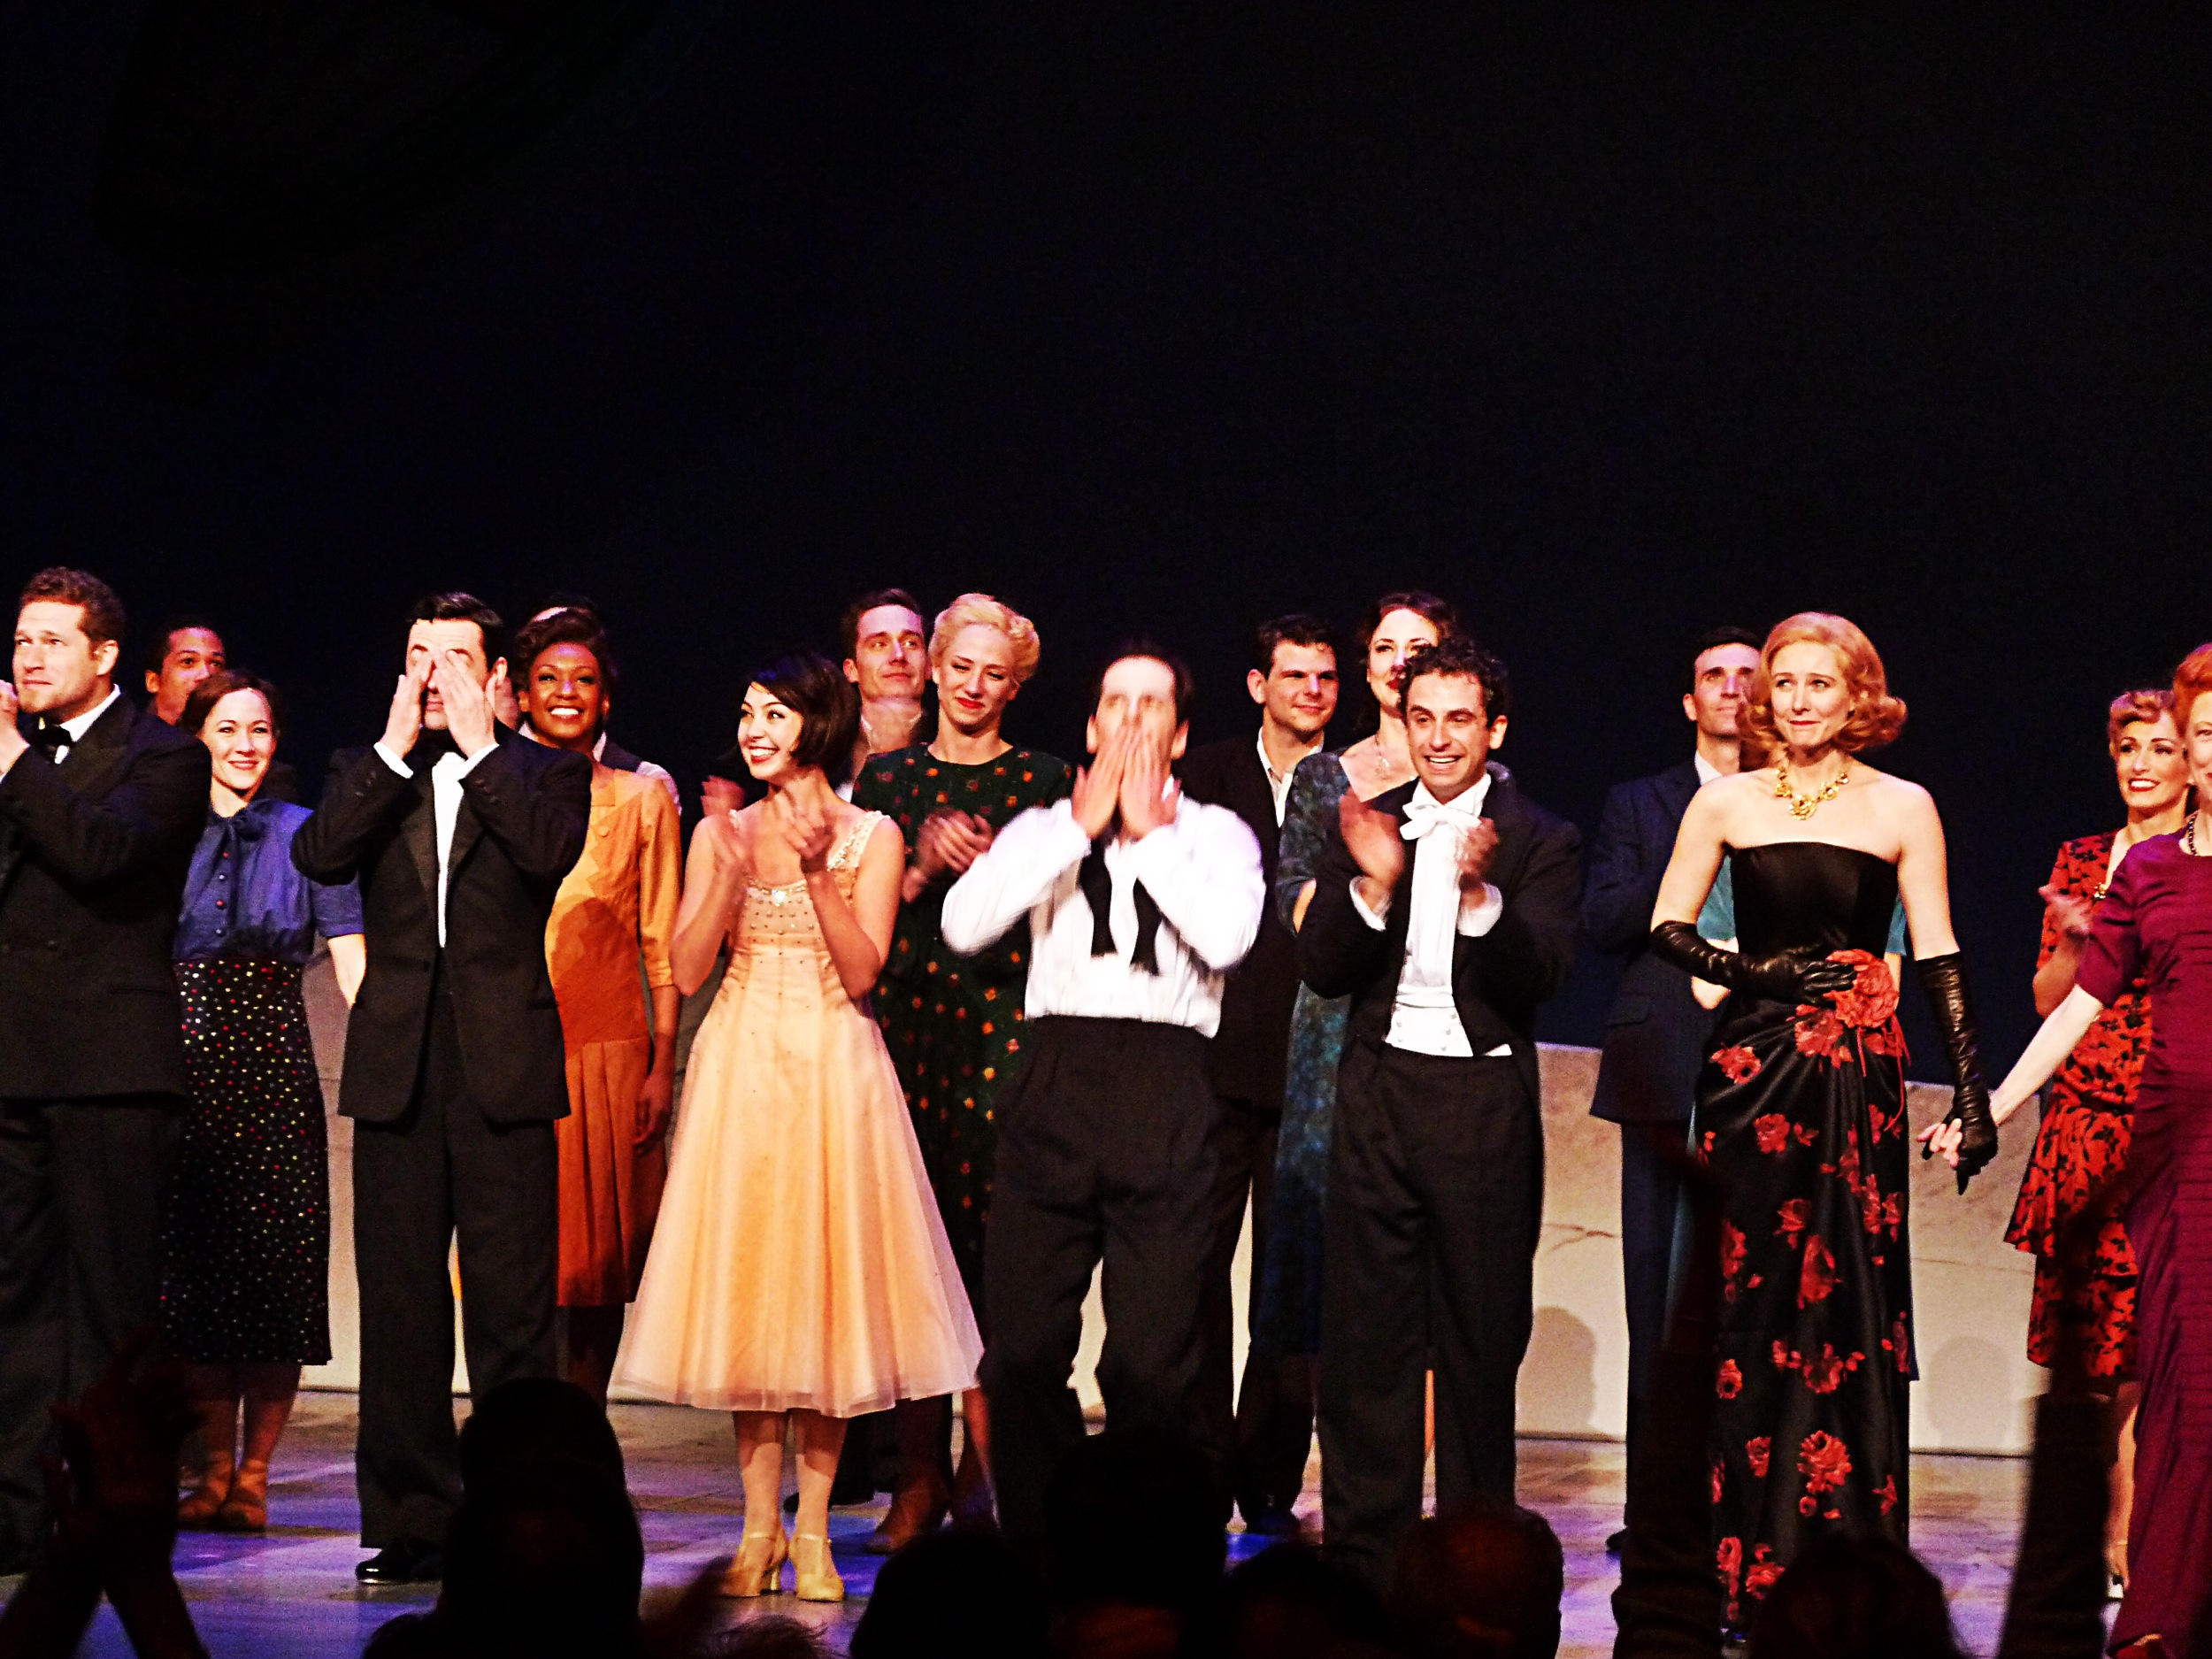 Max von Essen Leanne Cope Robert Fairchild Brandon Uranowitz Jill Paice on stage musical An American in Paris comédie musicale salut Théâtre du Chatelet Paris photo United States of Paris blog